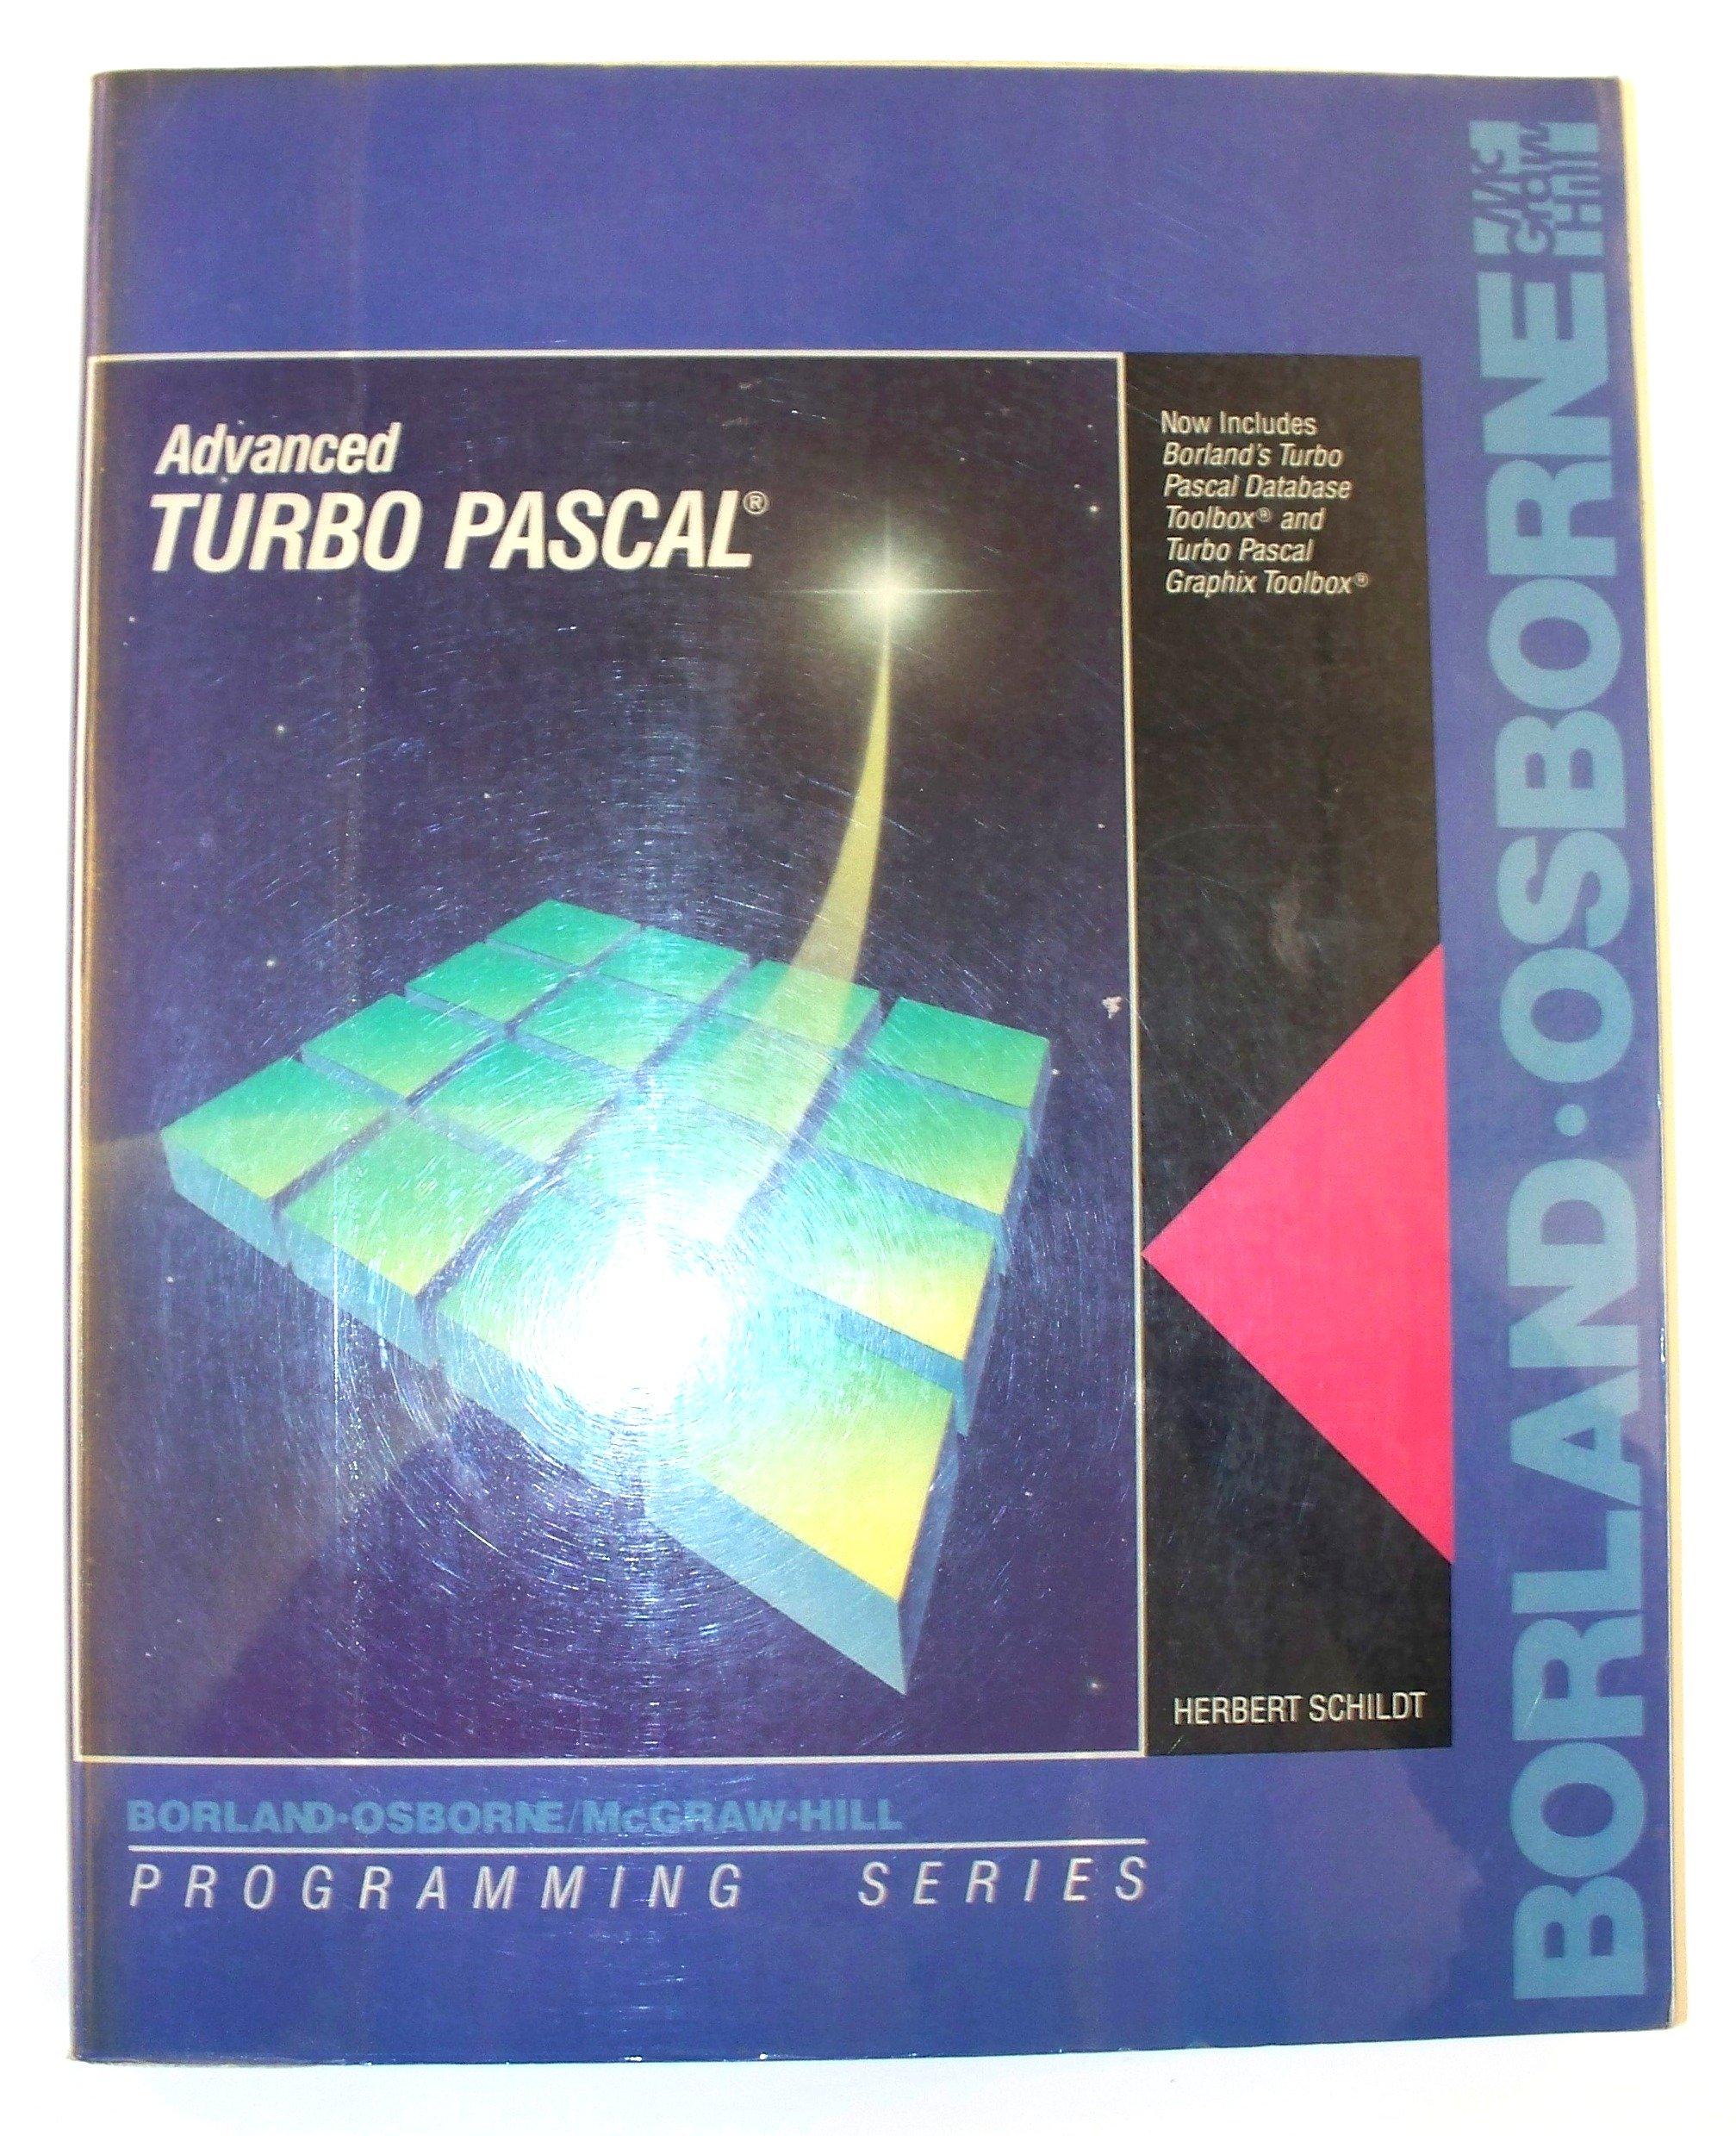 Advanced Turbo Pascal: Now Includes Borlands Turbo Pascal Database Toolbox and Turbo Pascal Graphix Toolbox (Programming Series): Herbert Schildt: ...